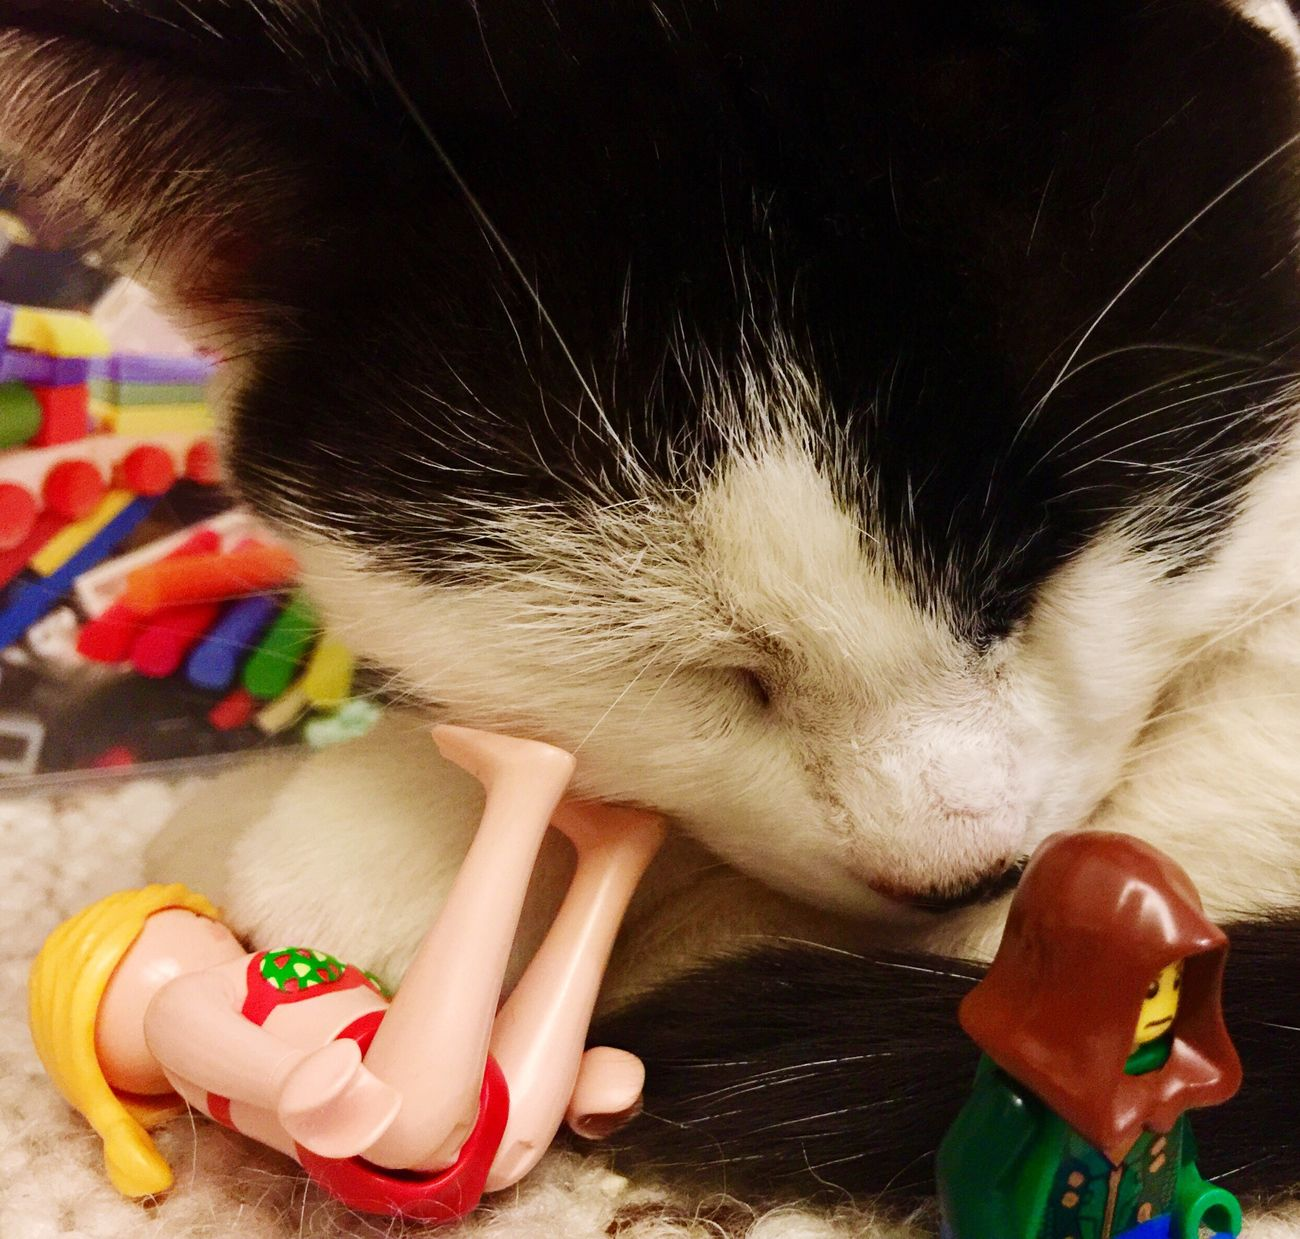 Playground Cat LEGO Afternoon Lasy Hold My Head